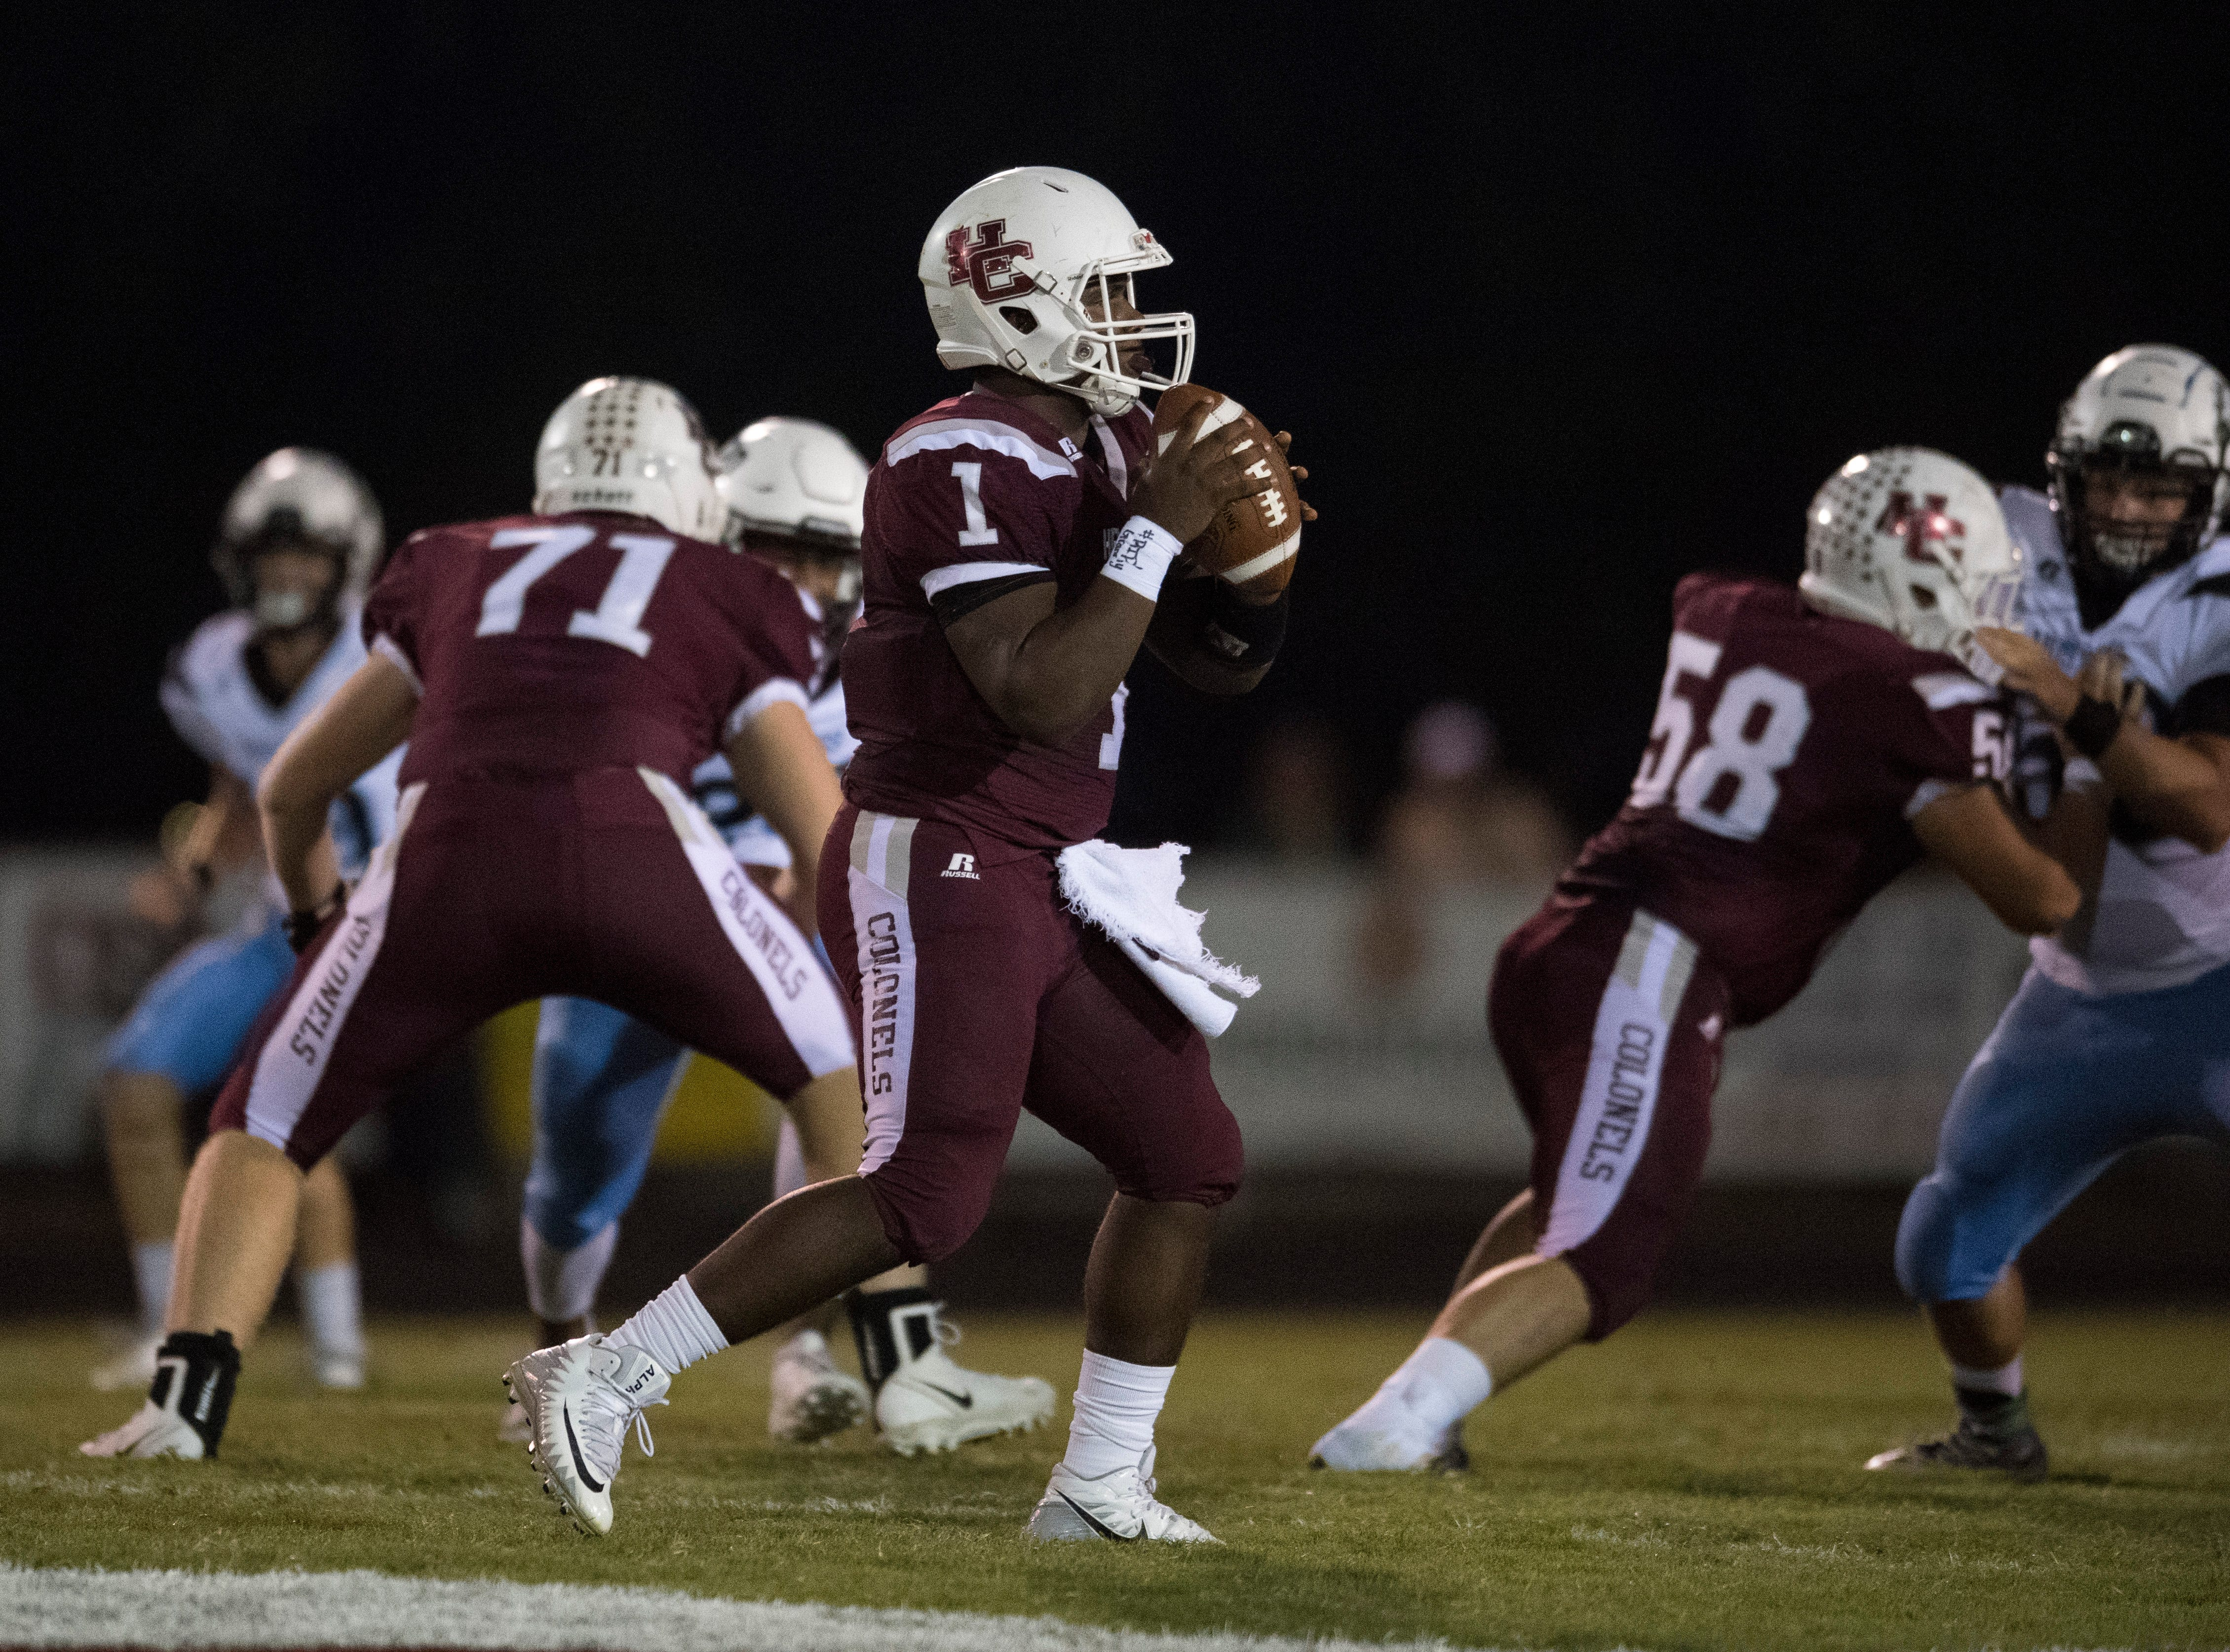 Henderson's Quarterback Skip Patterson (1) looks for an open receiver during the Henderson vs Muhlenberg County game Friday, Sept. 28, 2018. The Henderson County Colonels won, 61-6.